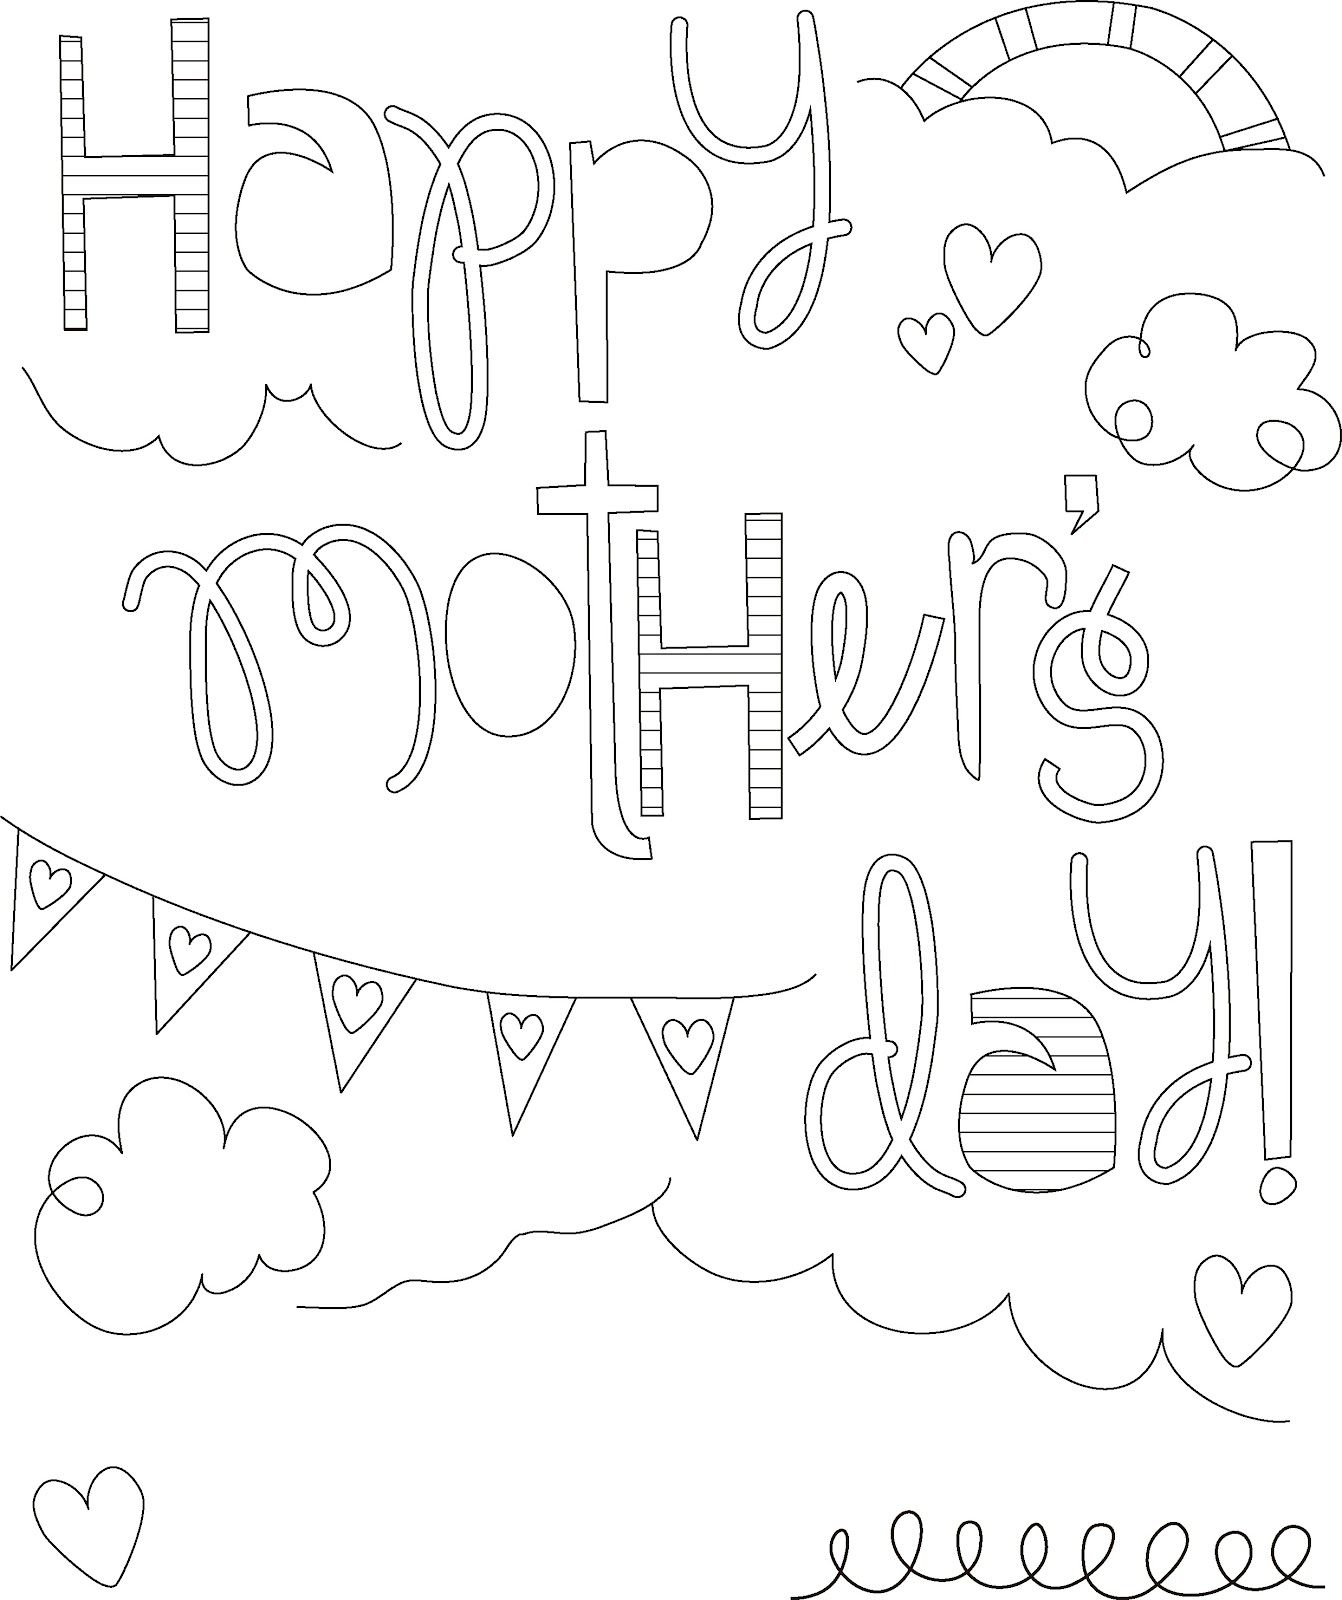 Coloring sheets for mothers day - Here Is A Collection Of Some Mother S Day Coloring Pages Which Kids May Easily Print